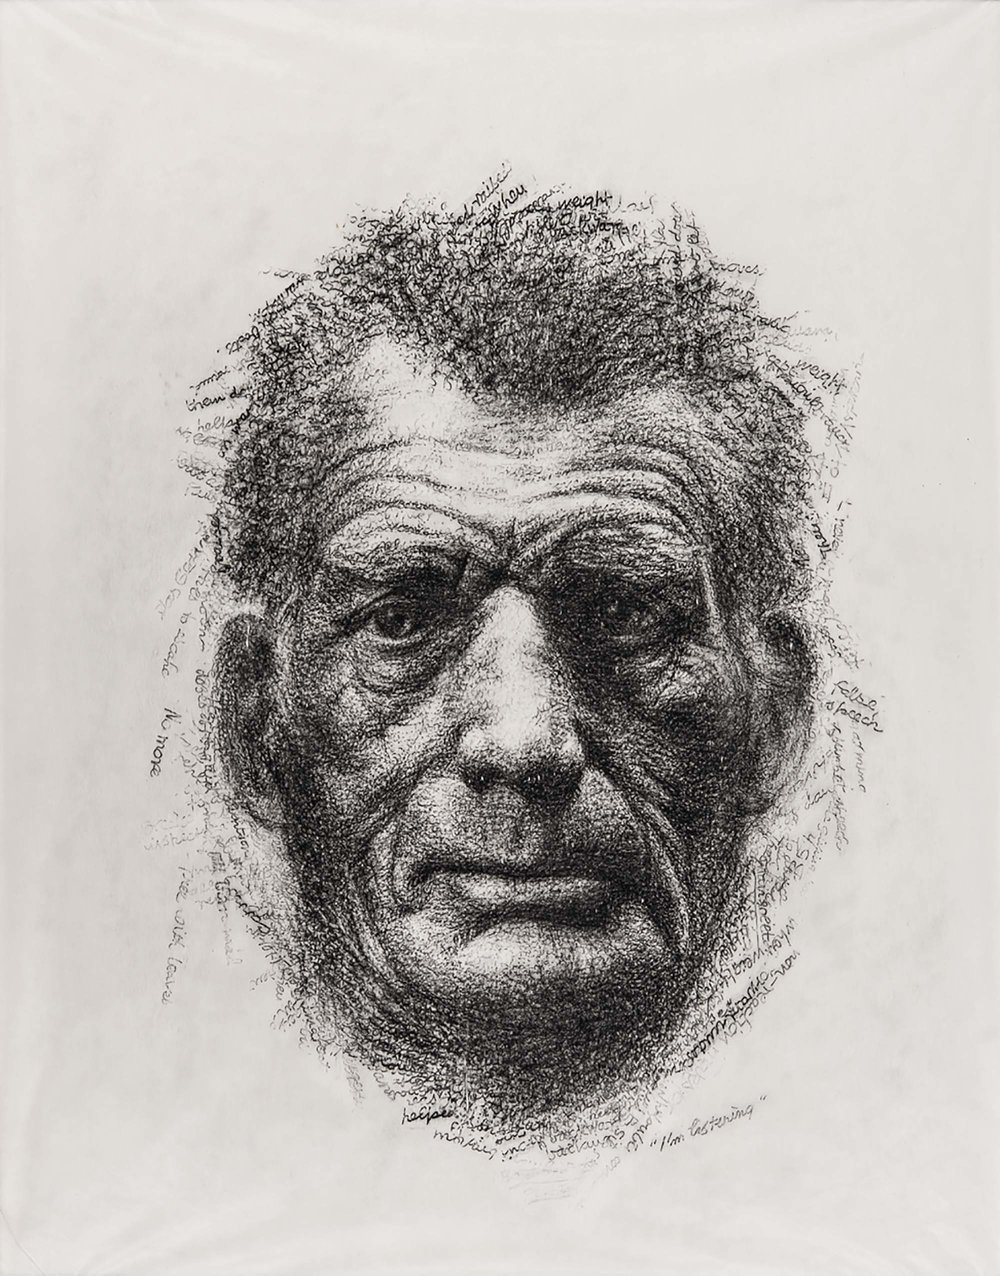 BECKETT IN HIS OWN WORDS    2000 H45, W35 cm Japanese paper, graphite Commissioned by Cryptic, Glasgow, UK